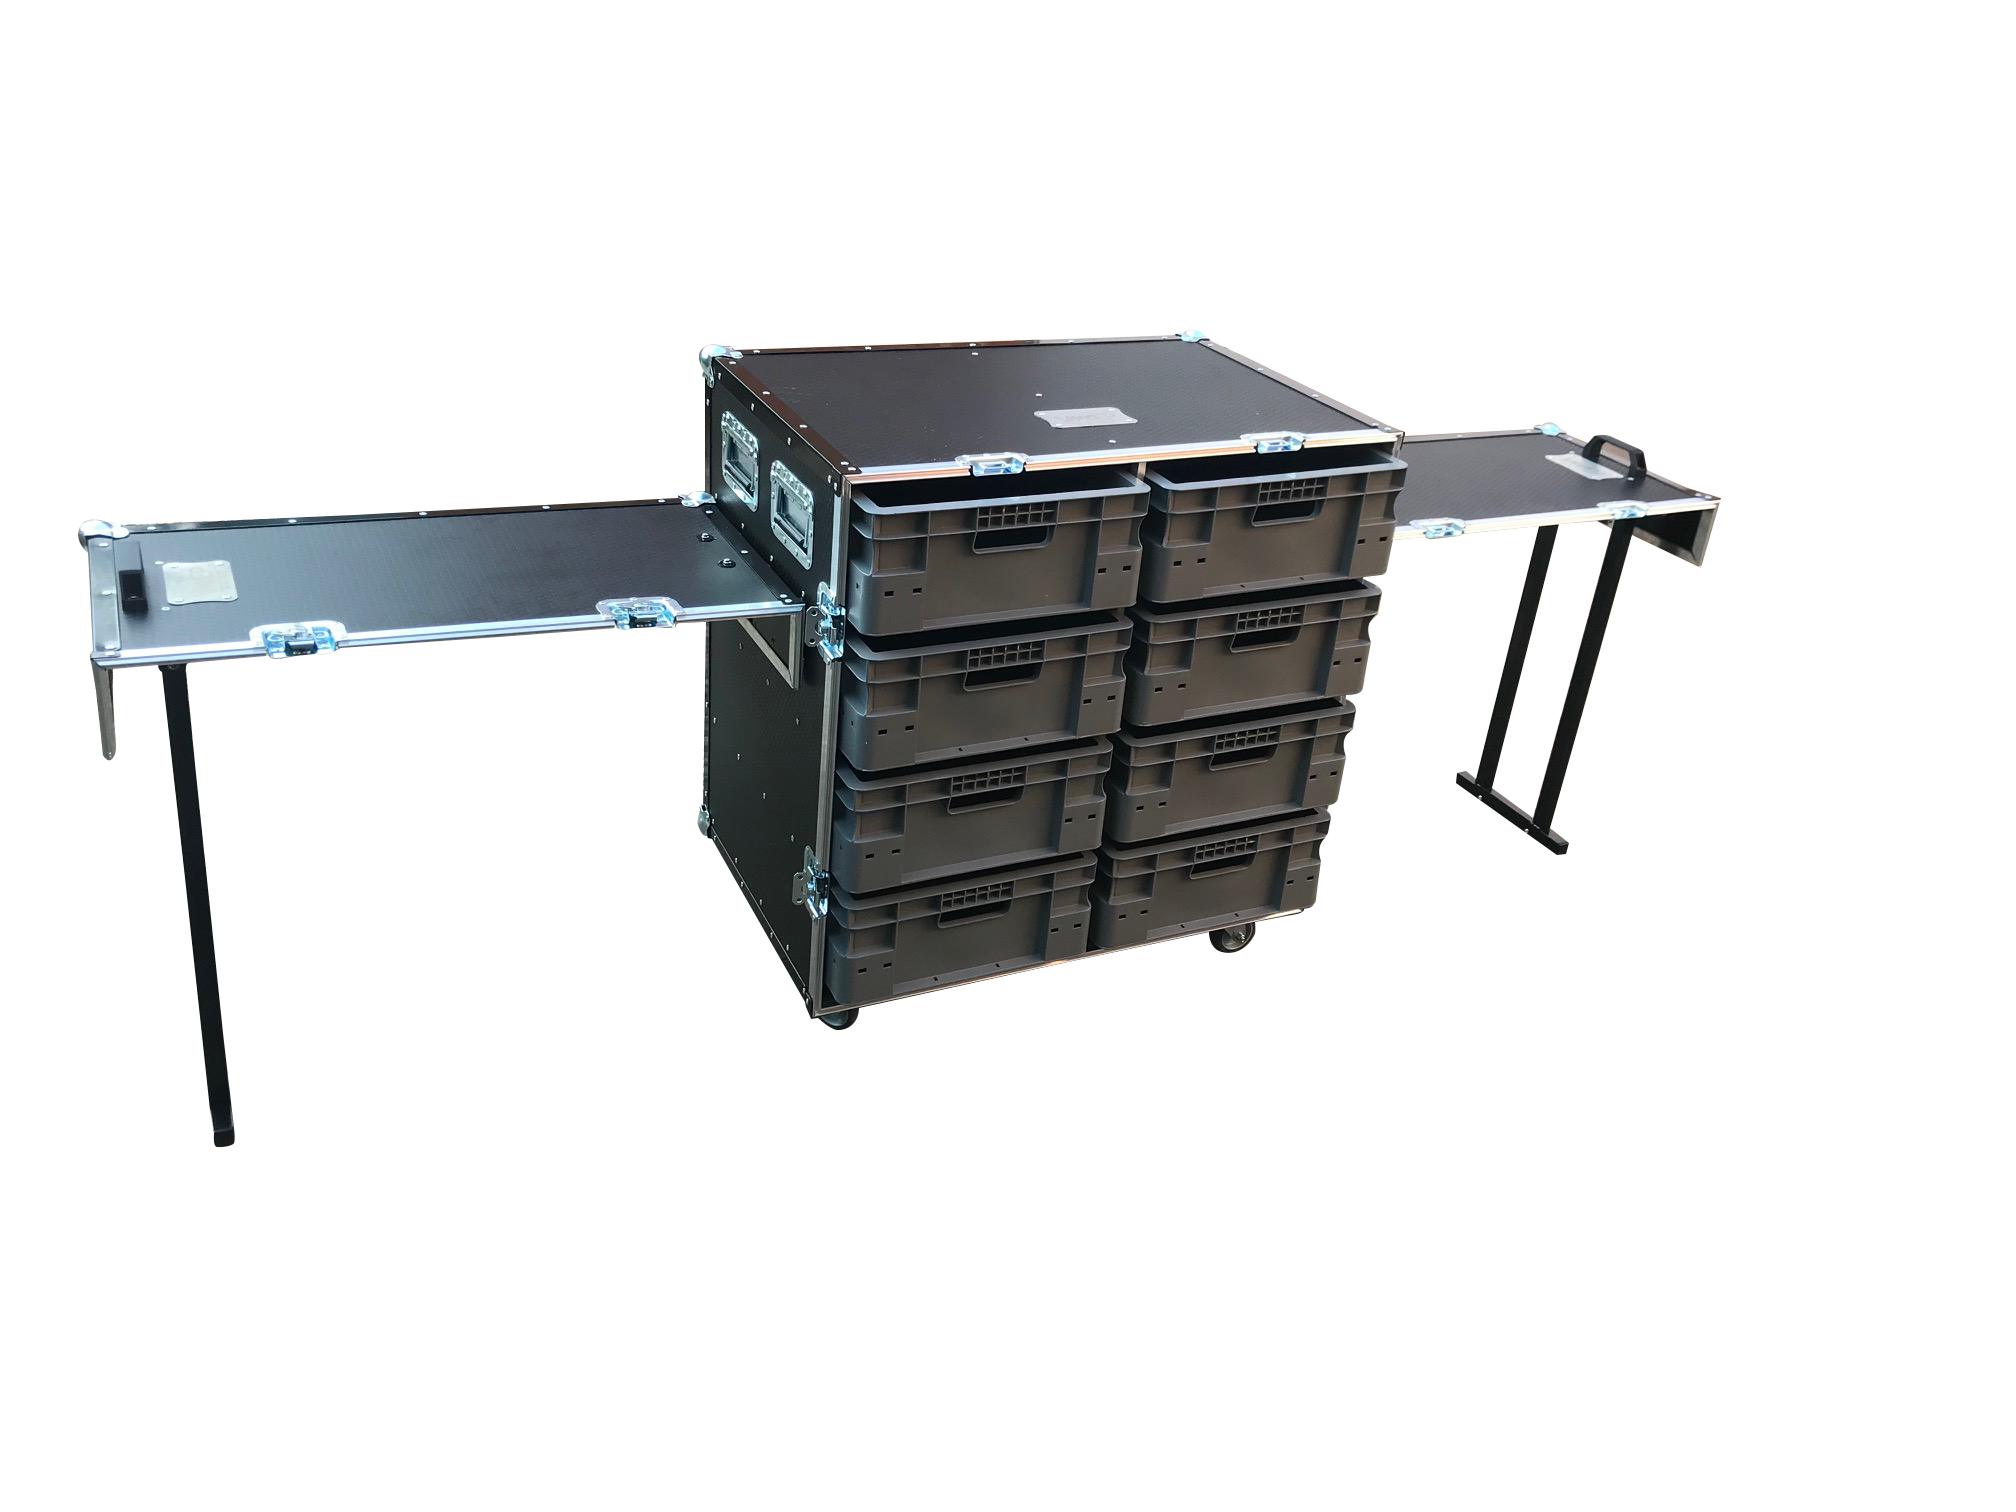 Small flight case with removable boxes